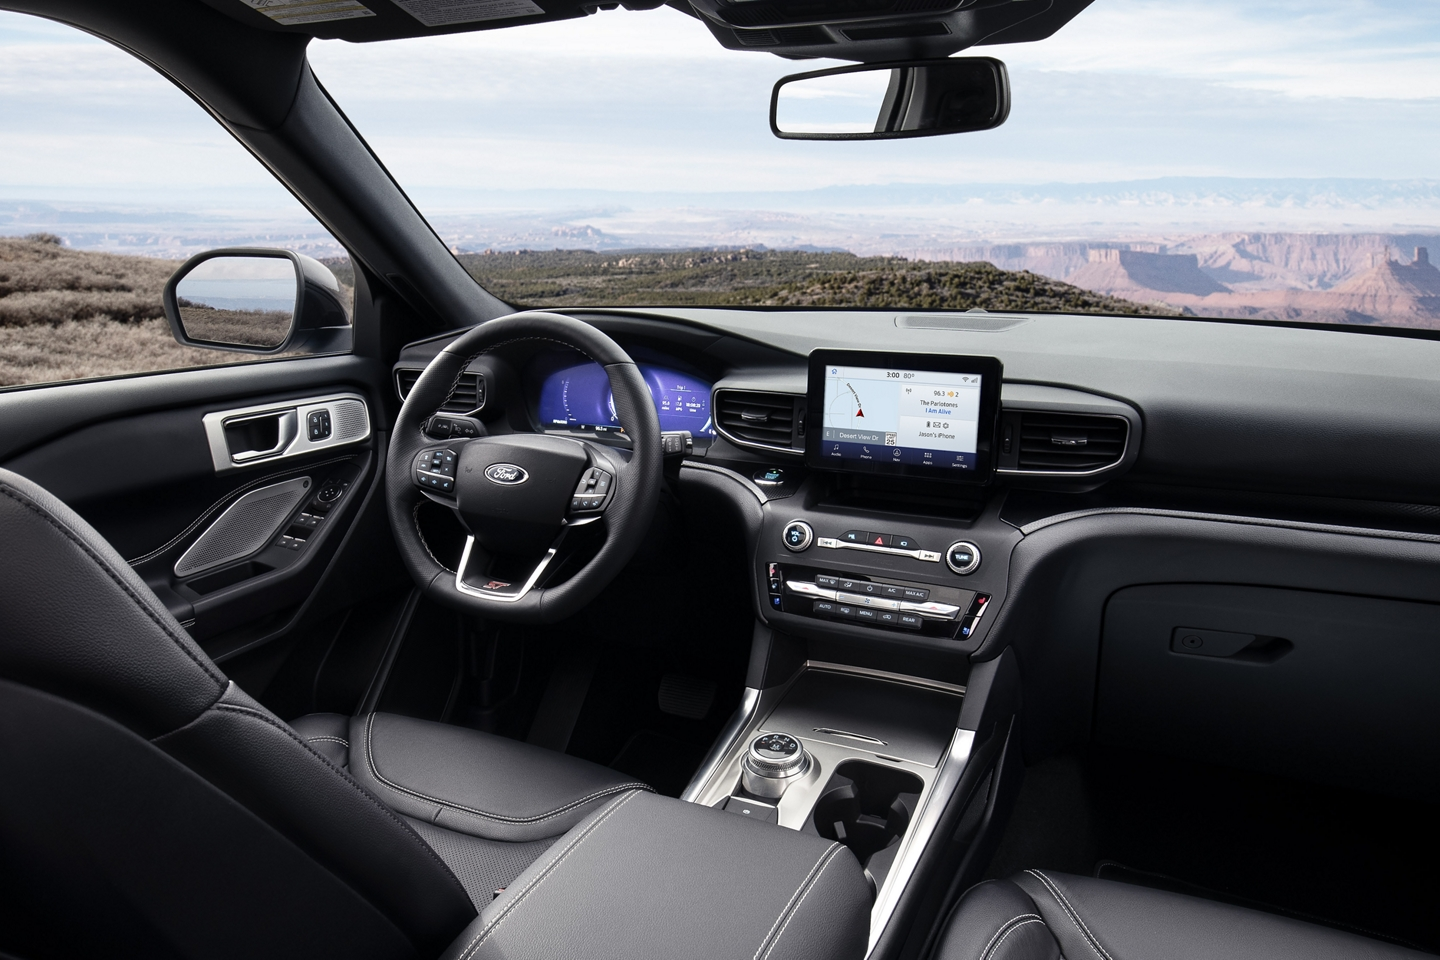 2020 Ford Explorer Cockpit